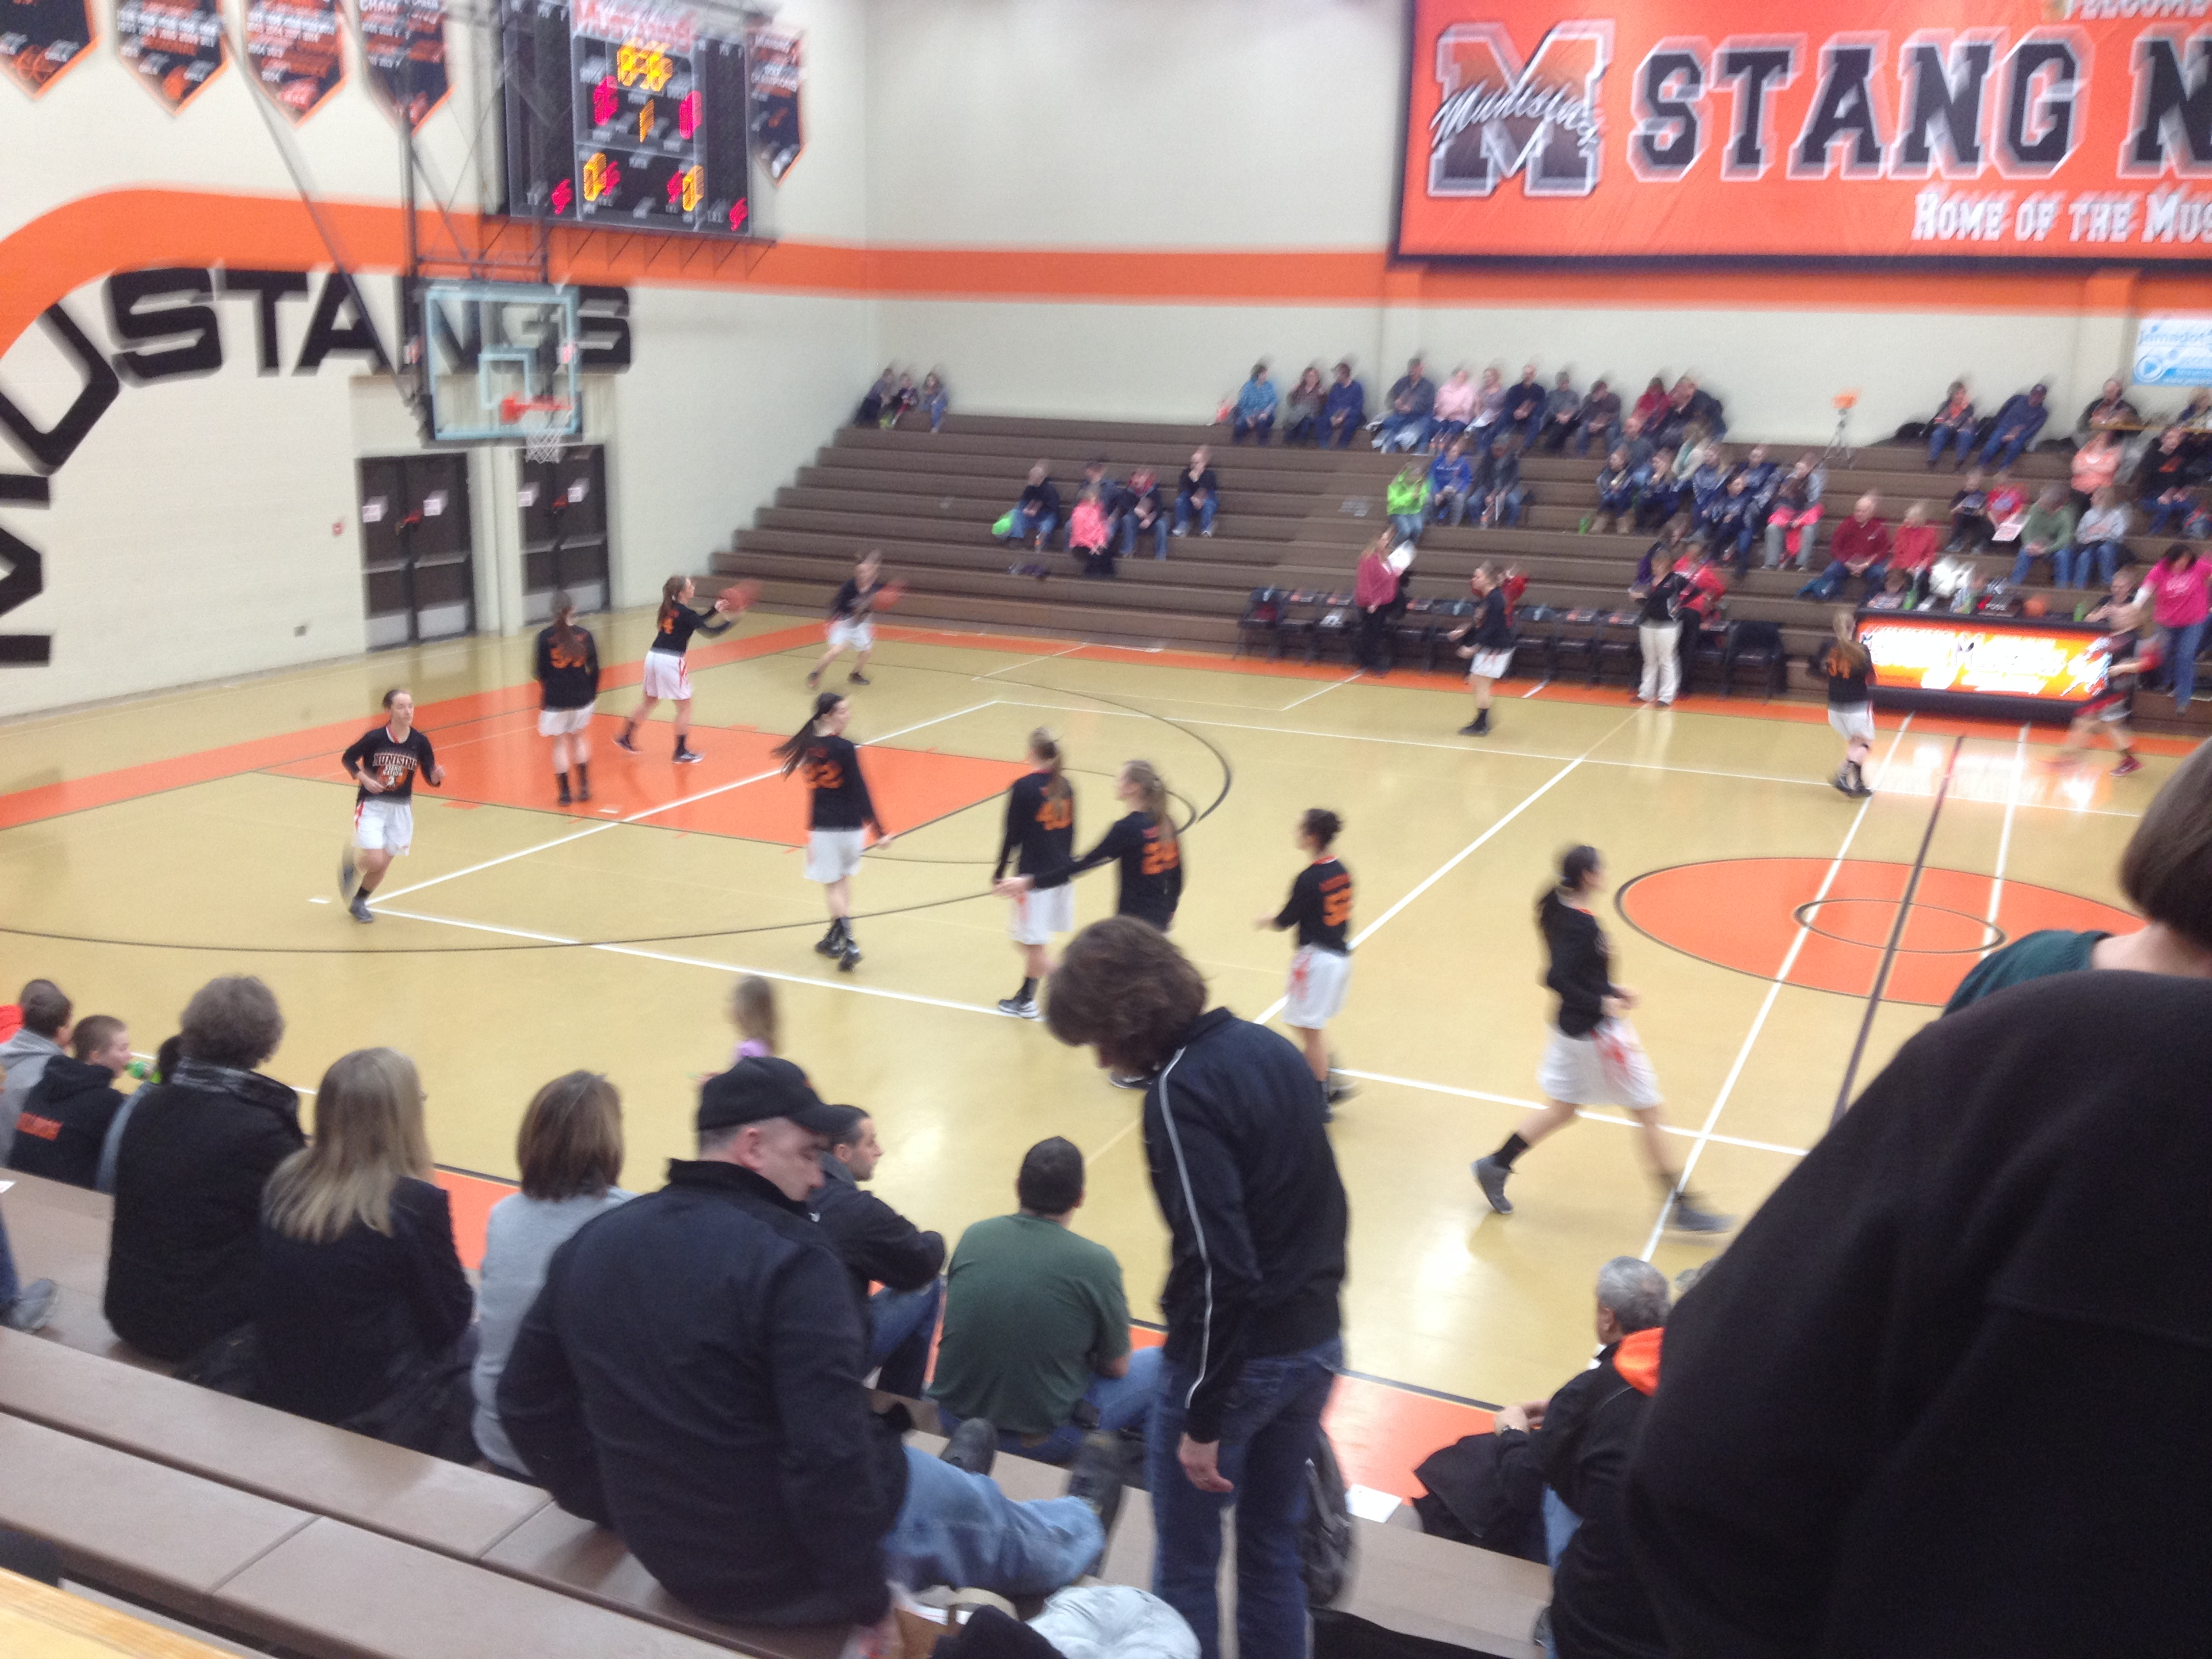 Michigan alger county munising - Halftime Gave The Cooks Big Bay De Noc Black Bears A Chance To Rest And Refocus Their Efforts The Munising Mustangs However Looked To Stay The Course